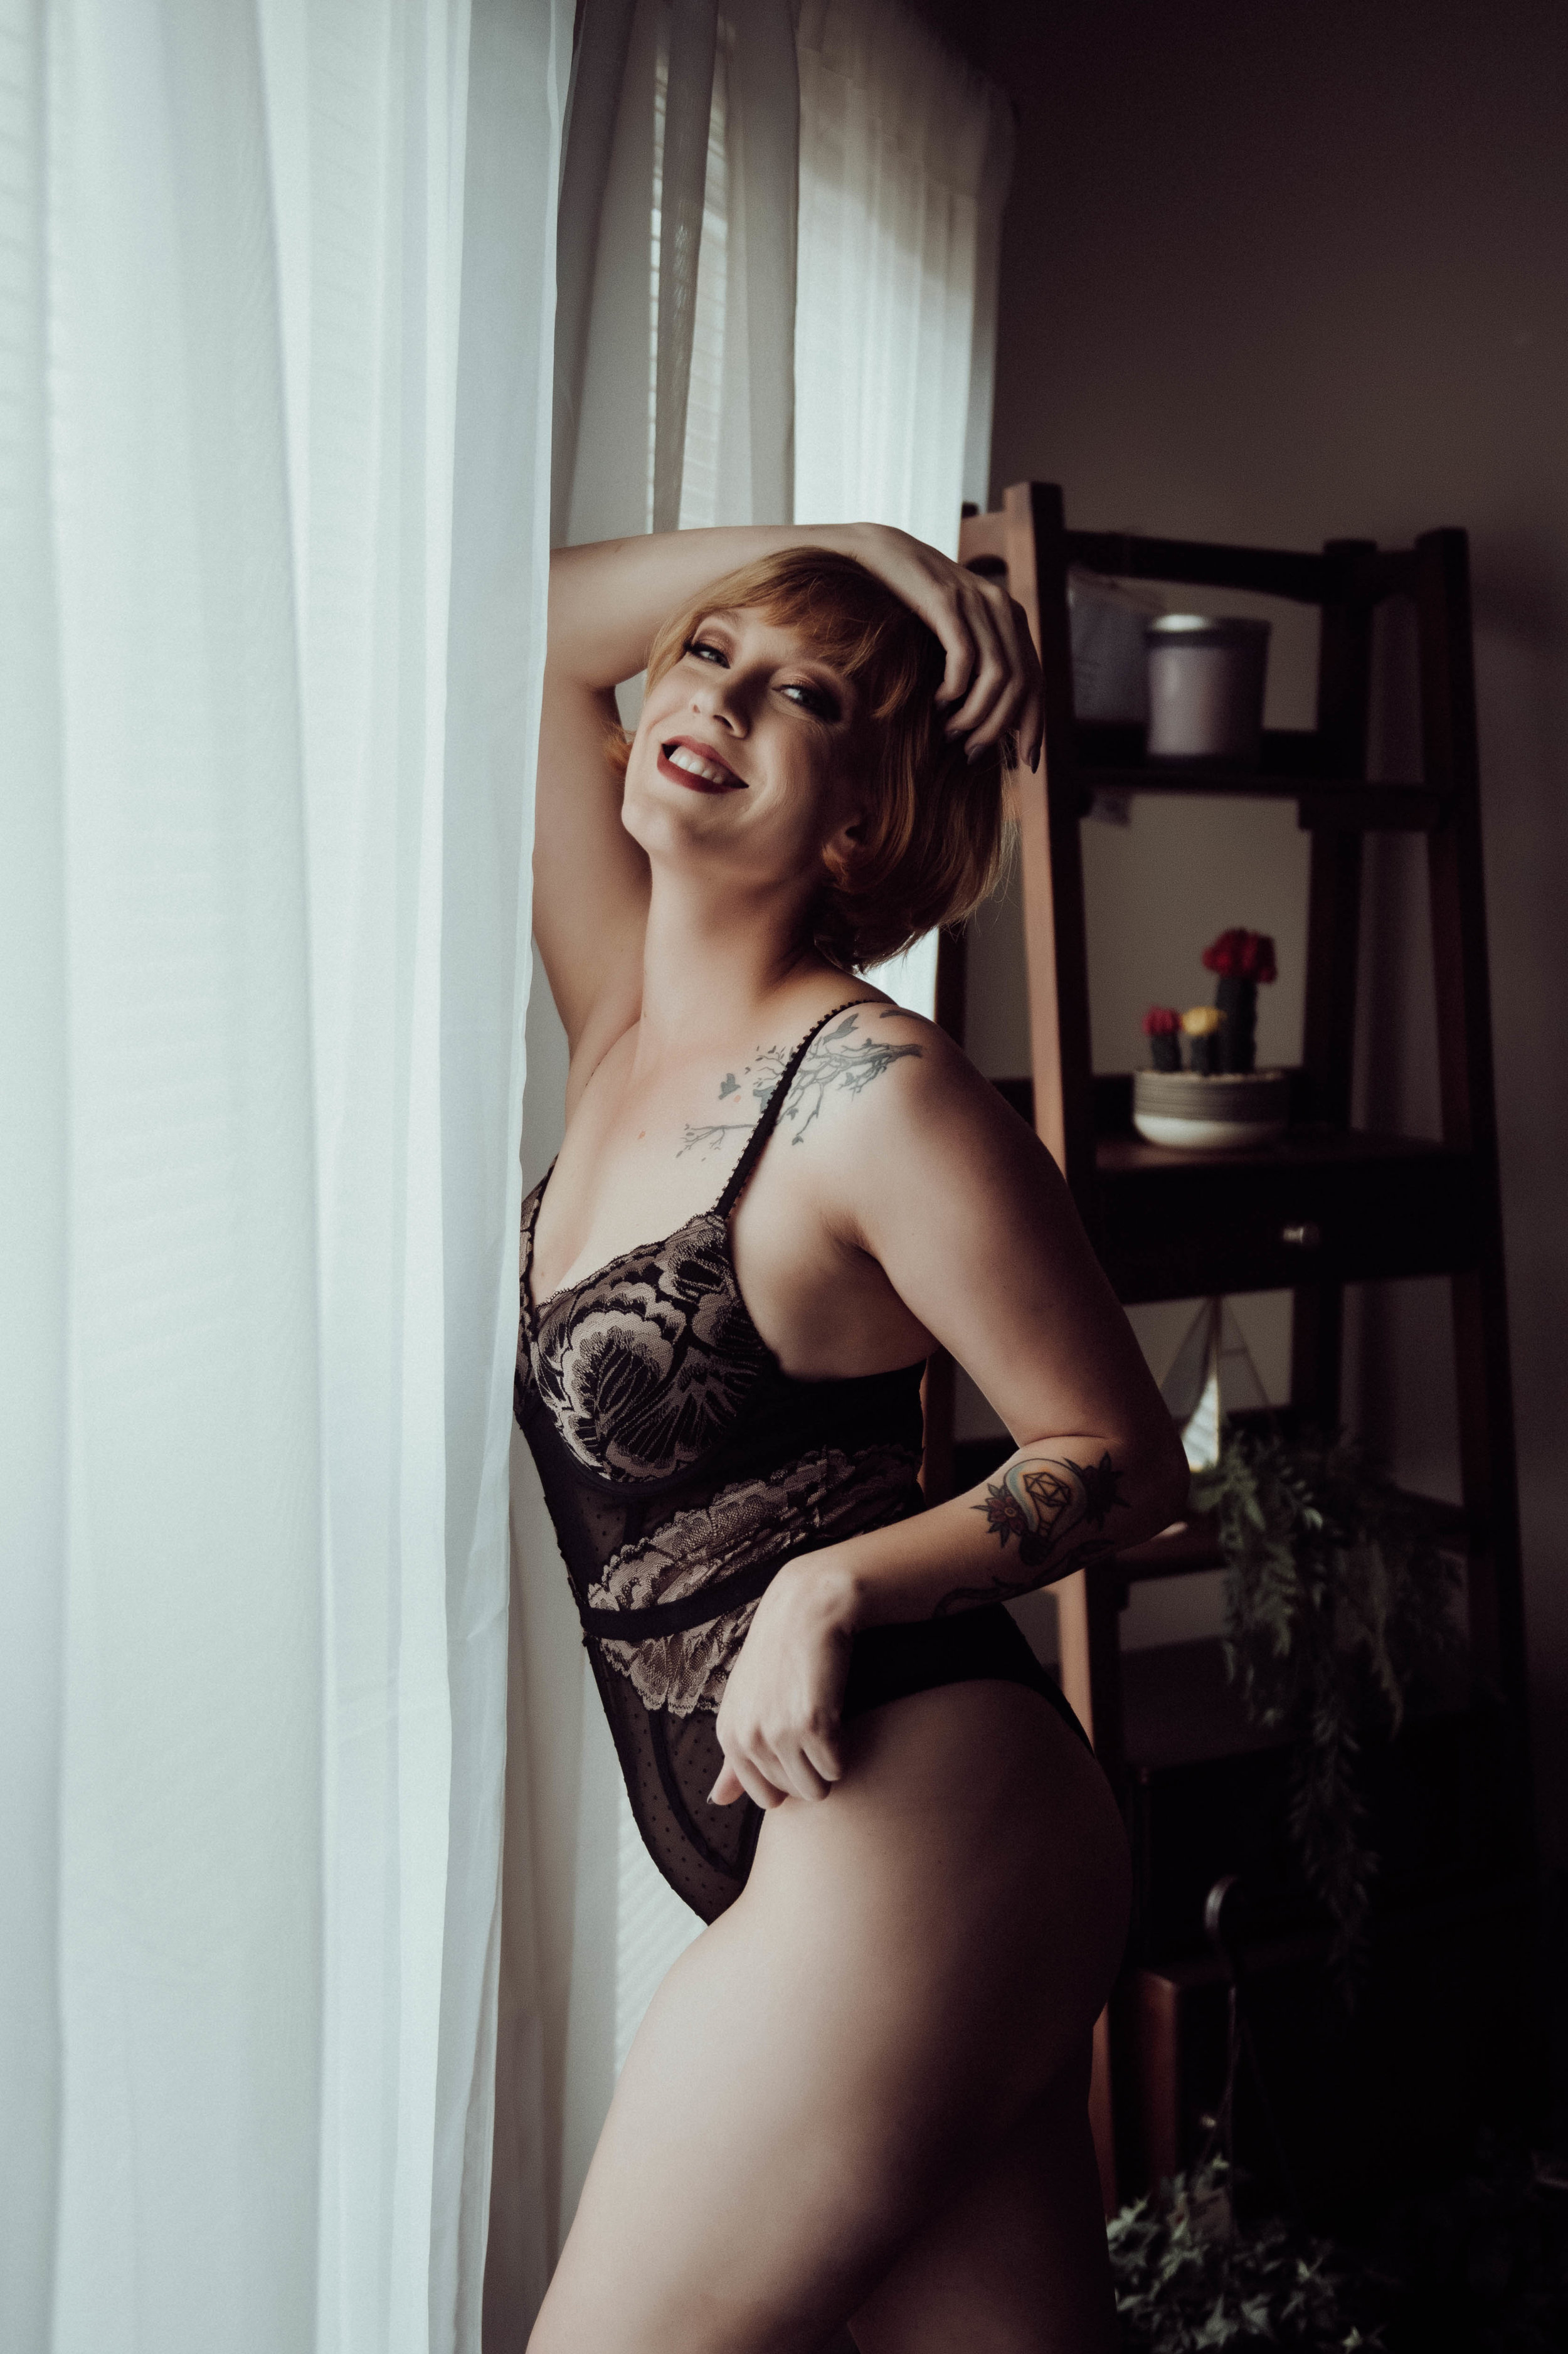 Smiling short hair woman redhead in black lace bodysuit boudoir photography new york city studio